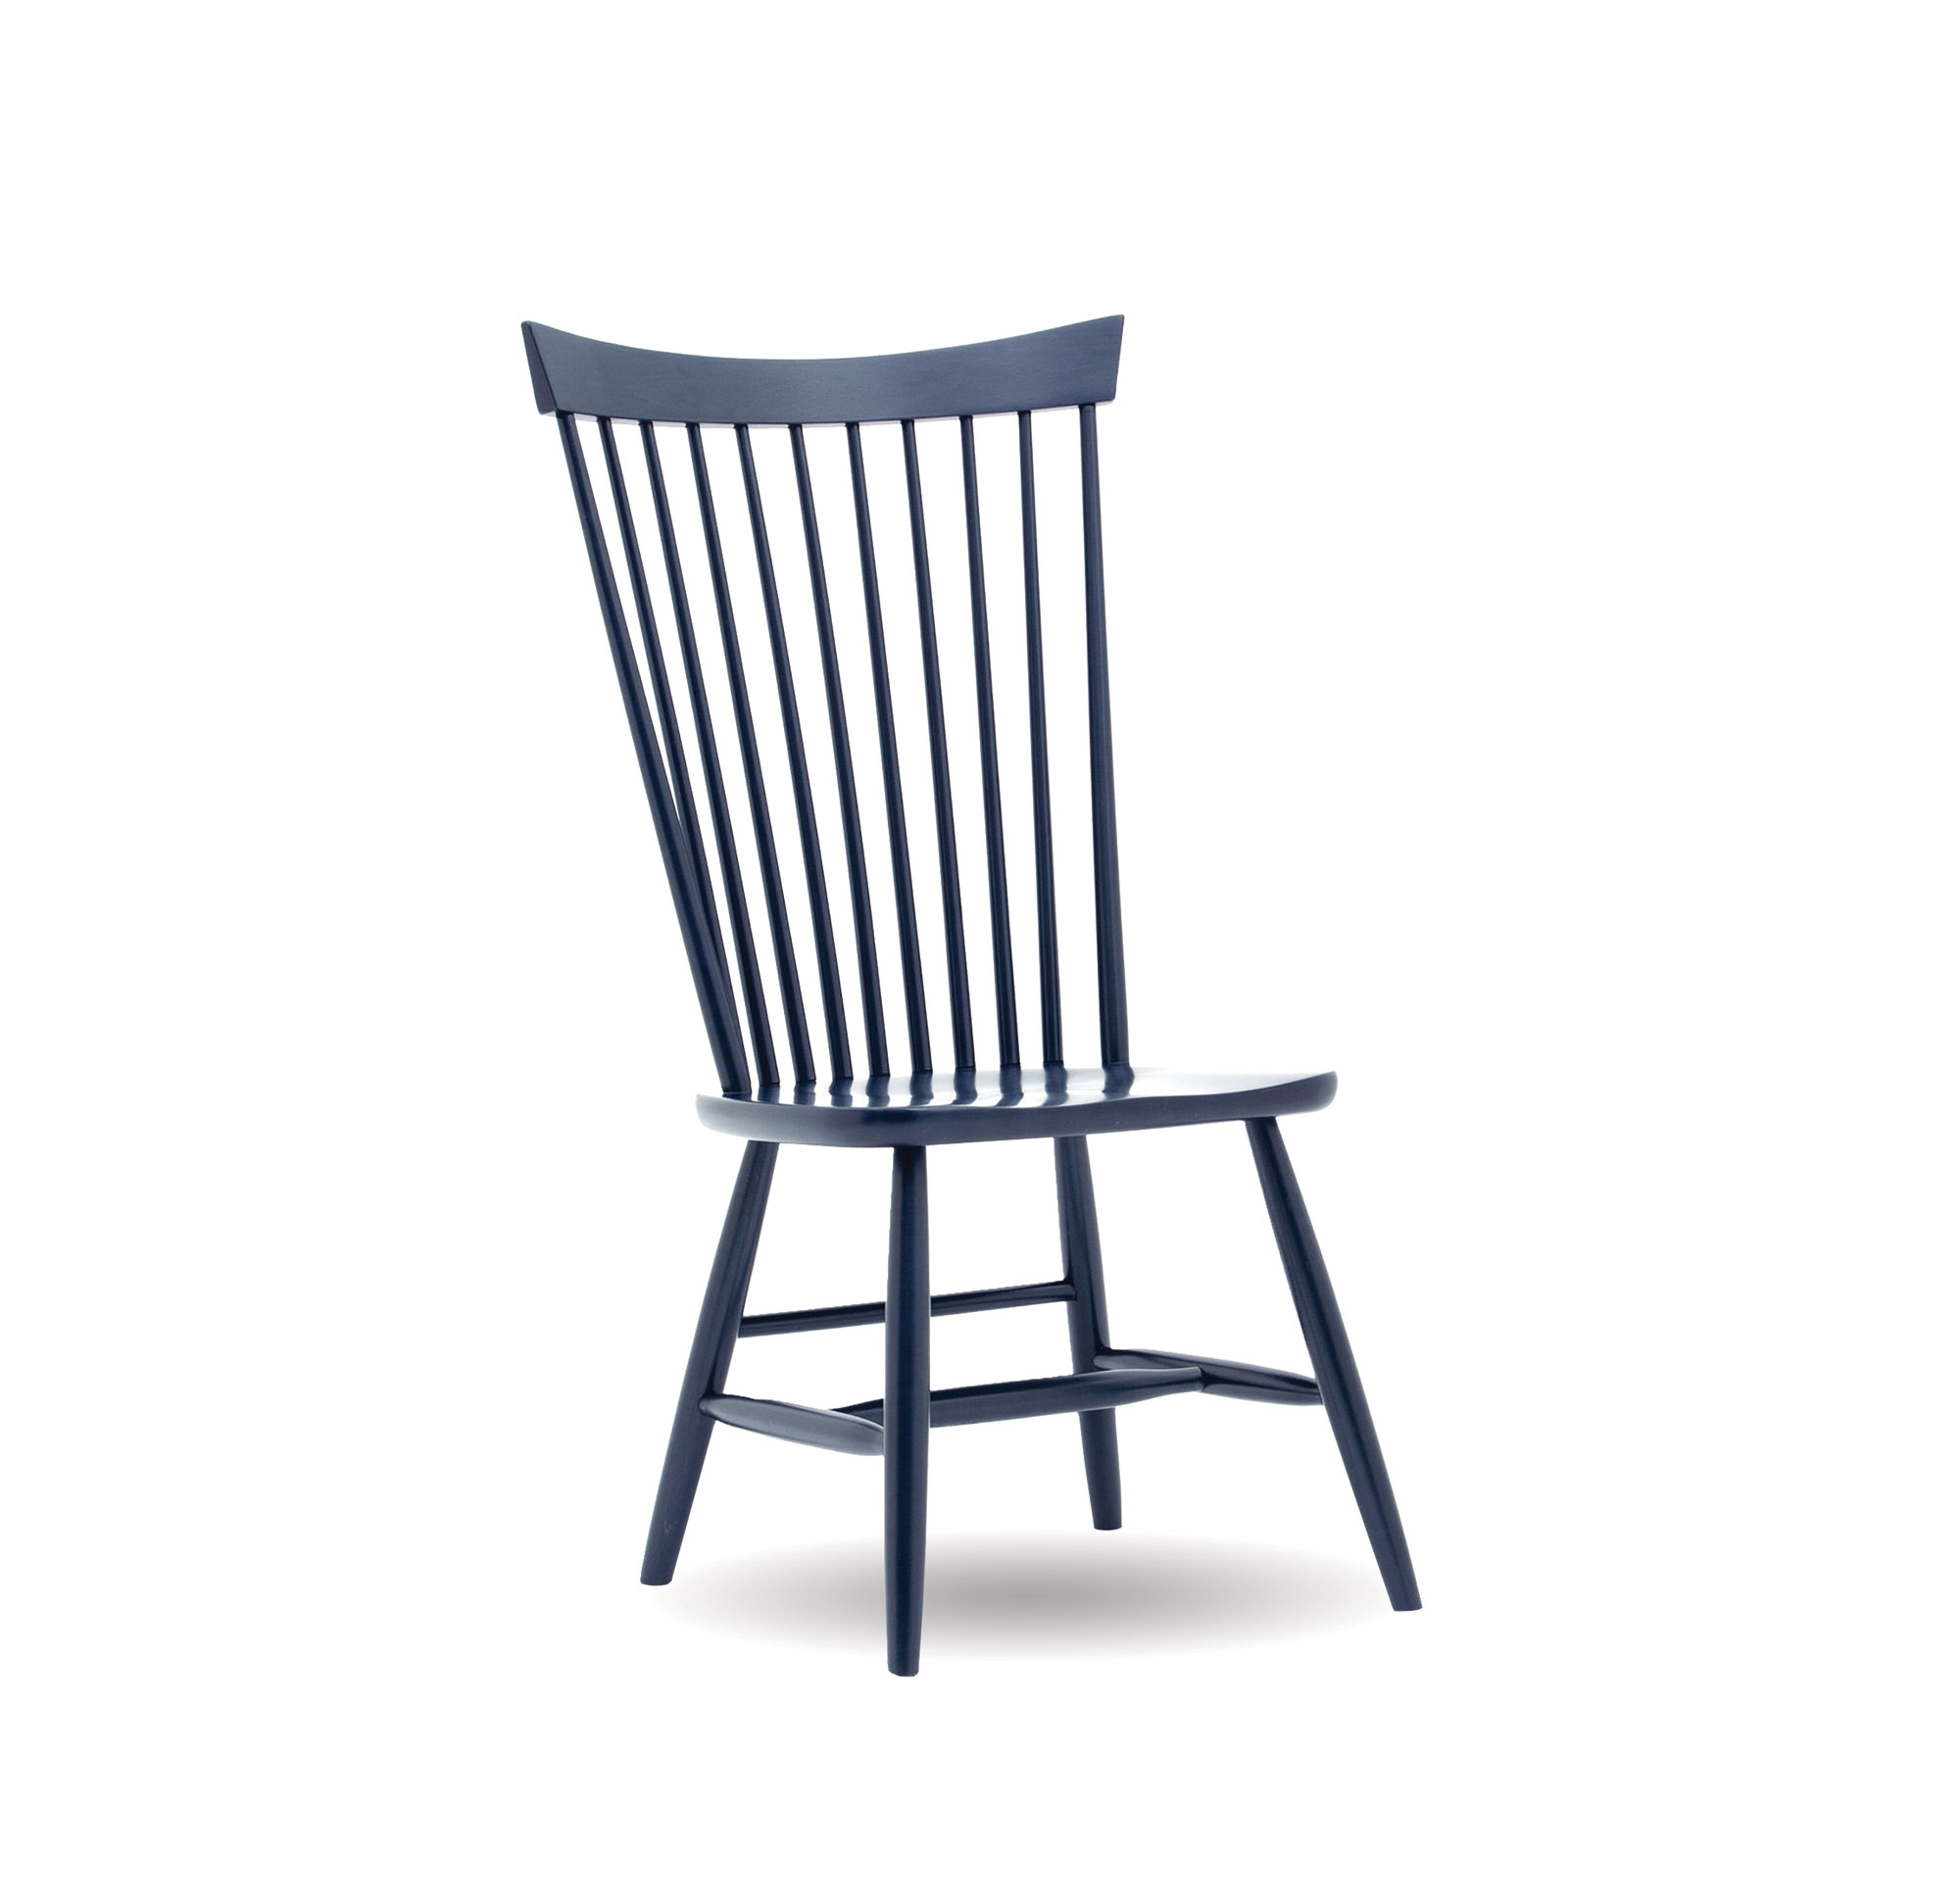 The Windley side chair by Mitchell Gold + Bob Williams